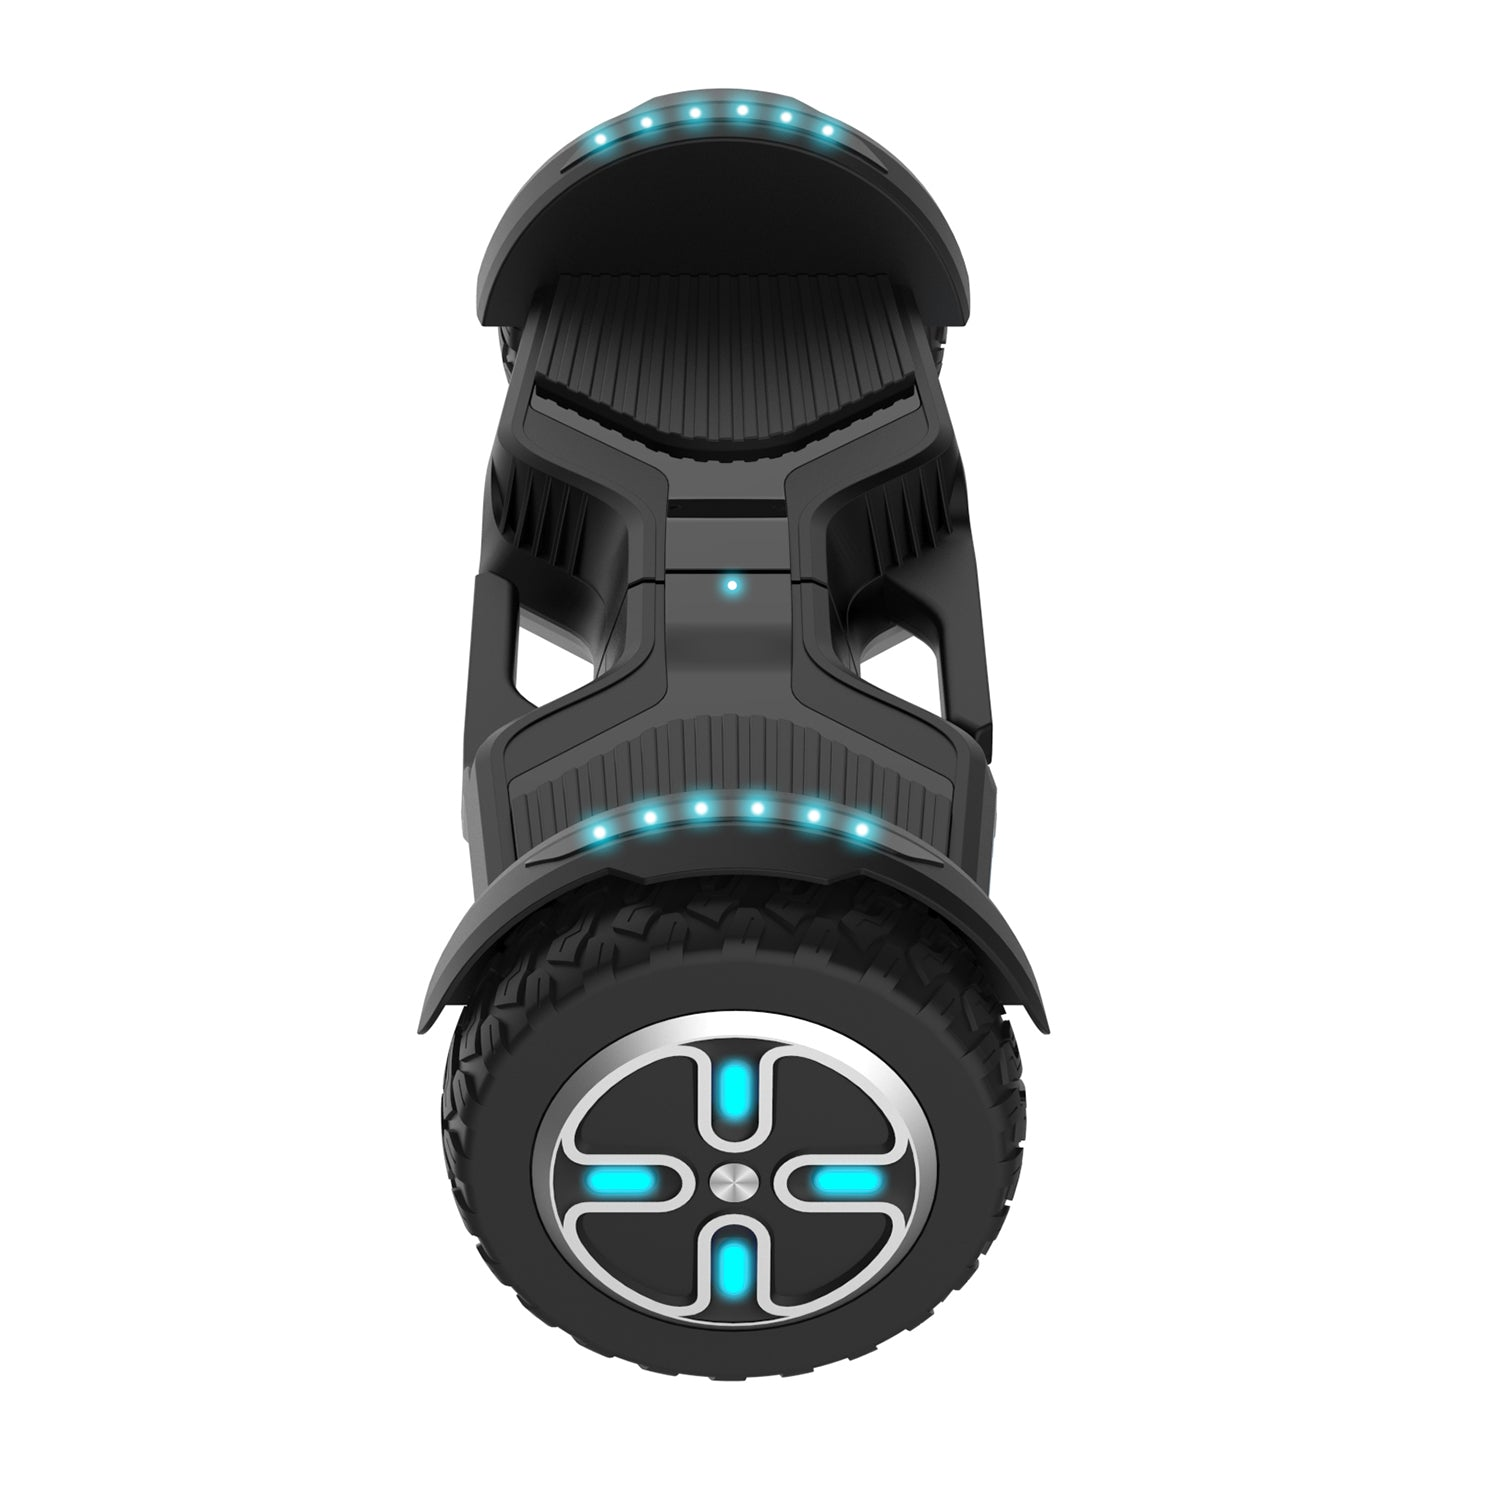 Black E3 hoverboard side image